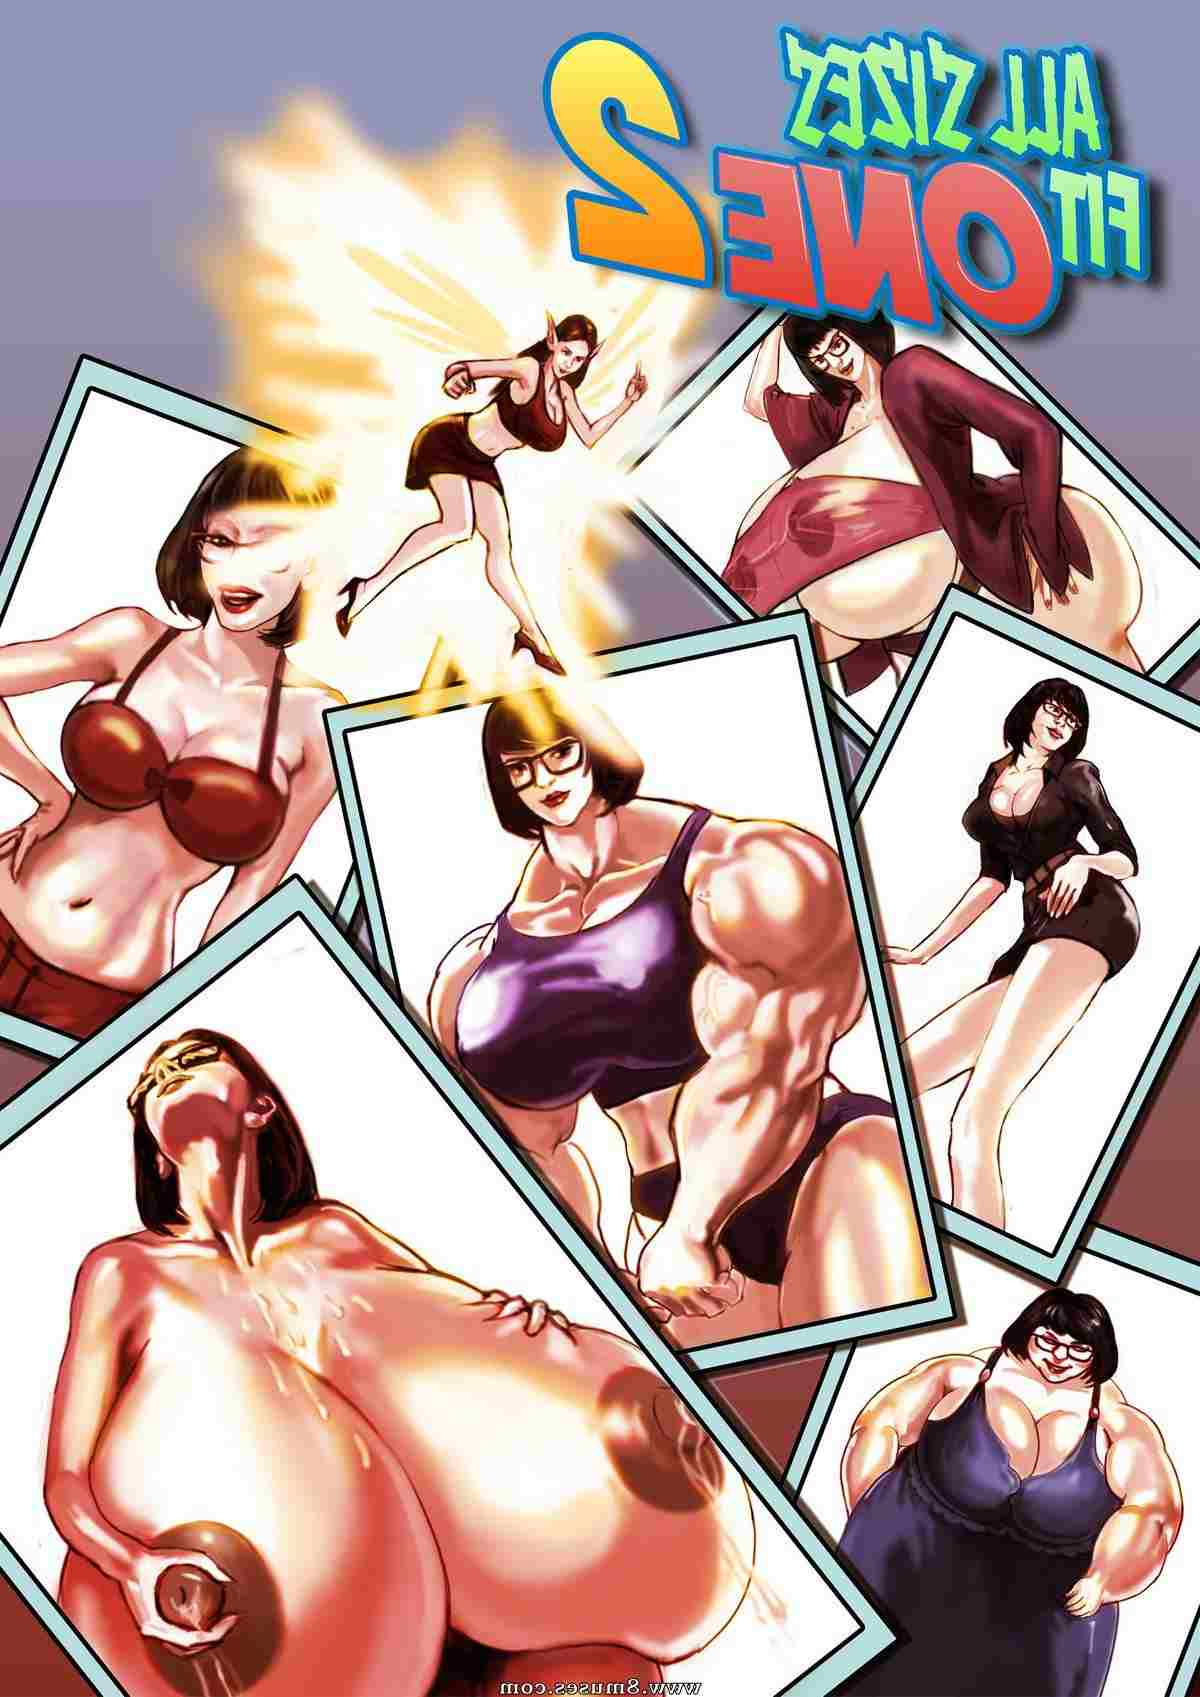 Expansionfan-Comics/All-Sizes-Fit-One All_Sizes_Fit_One__8muses_-_Sex_and_Porn_Comics_2.jpg